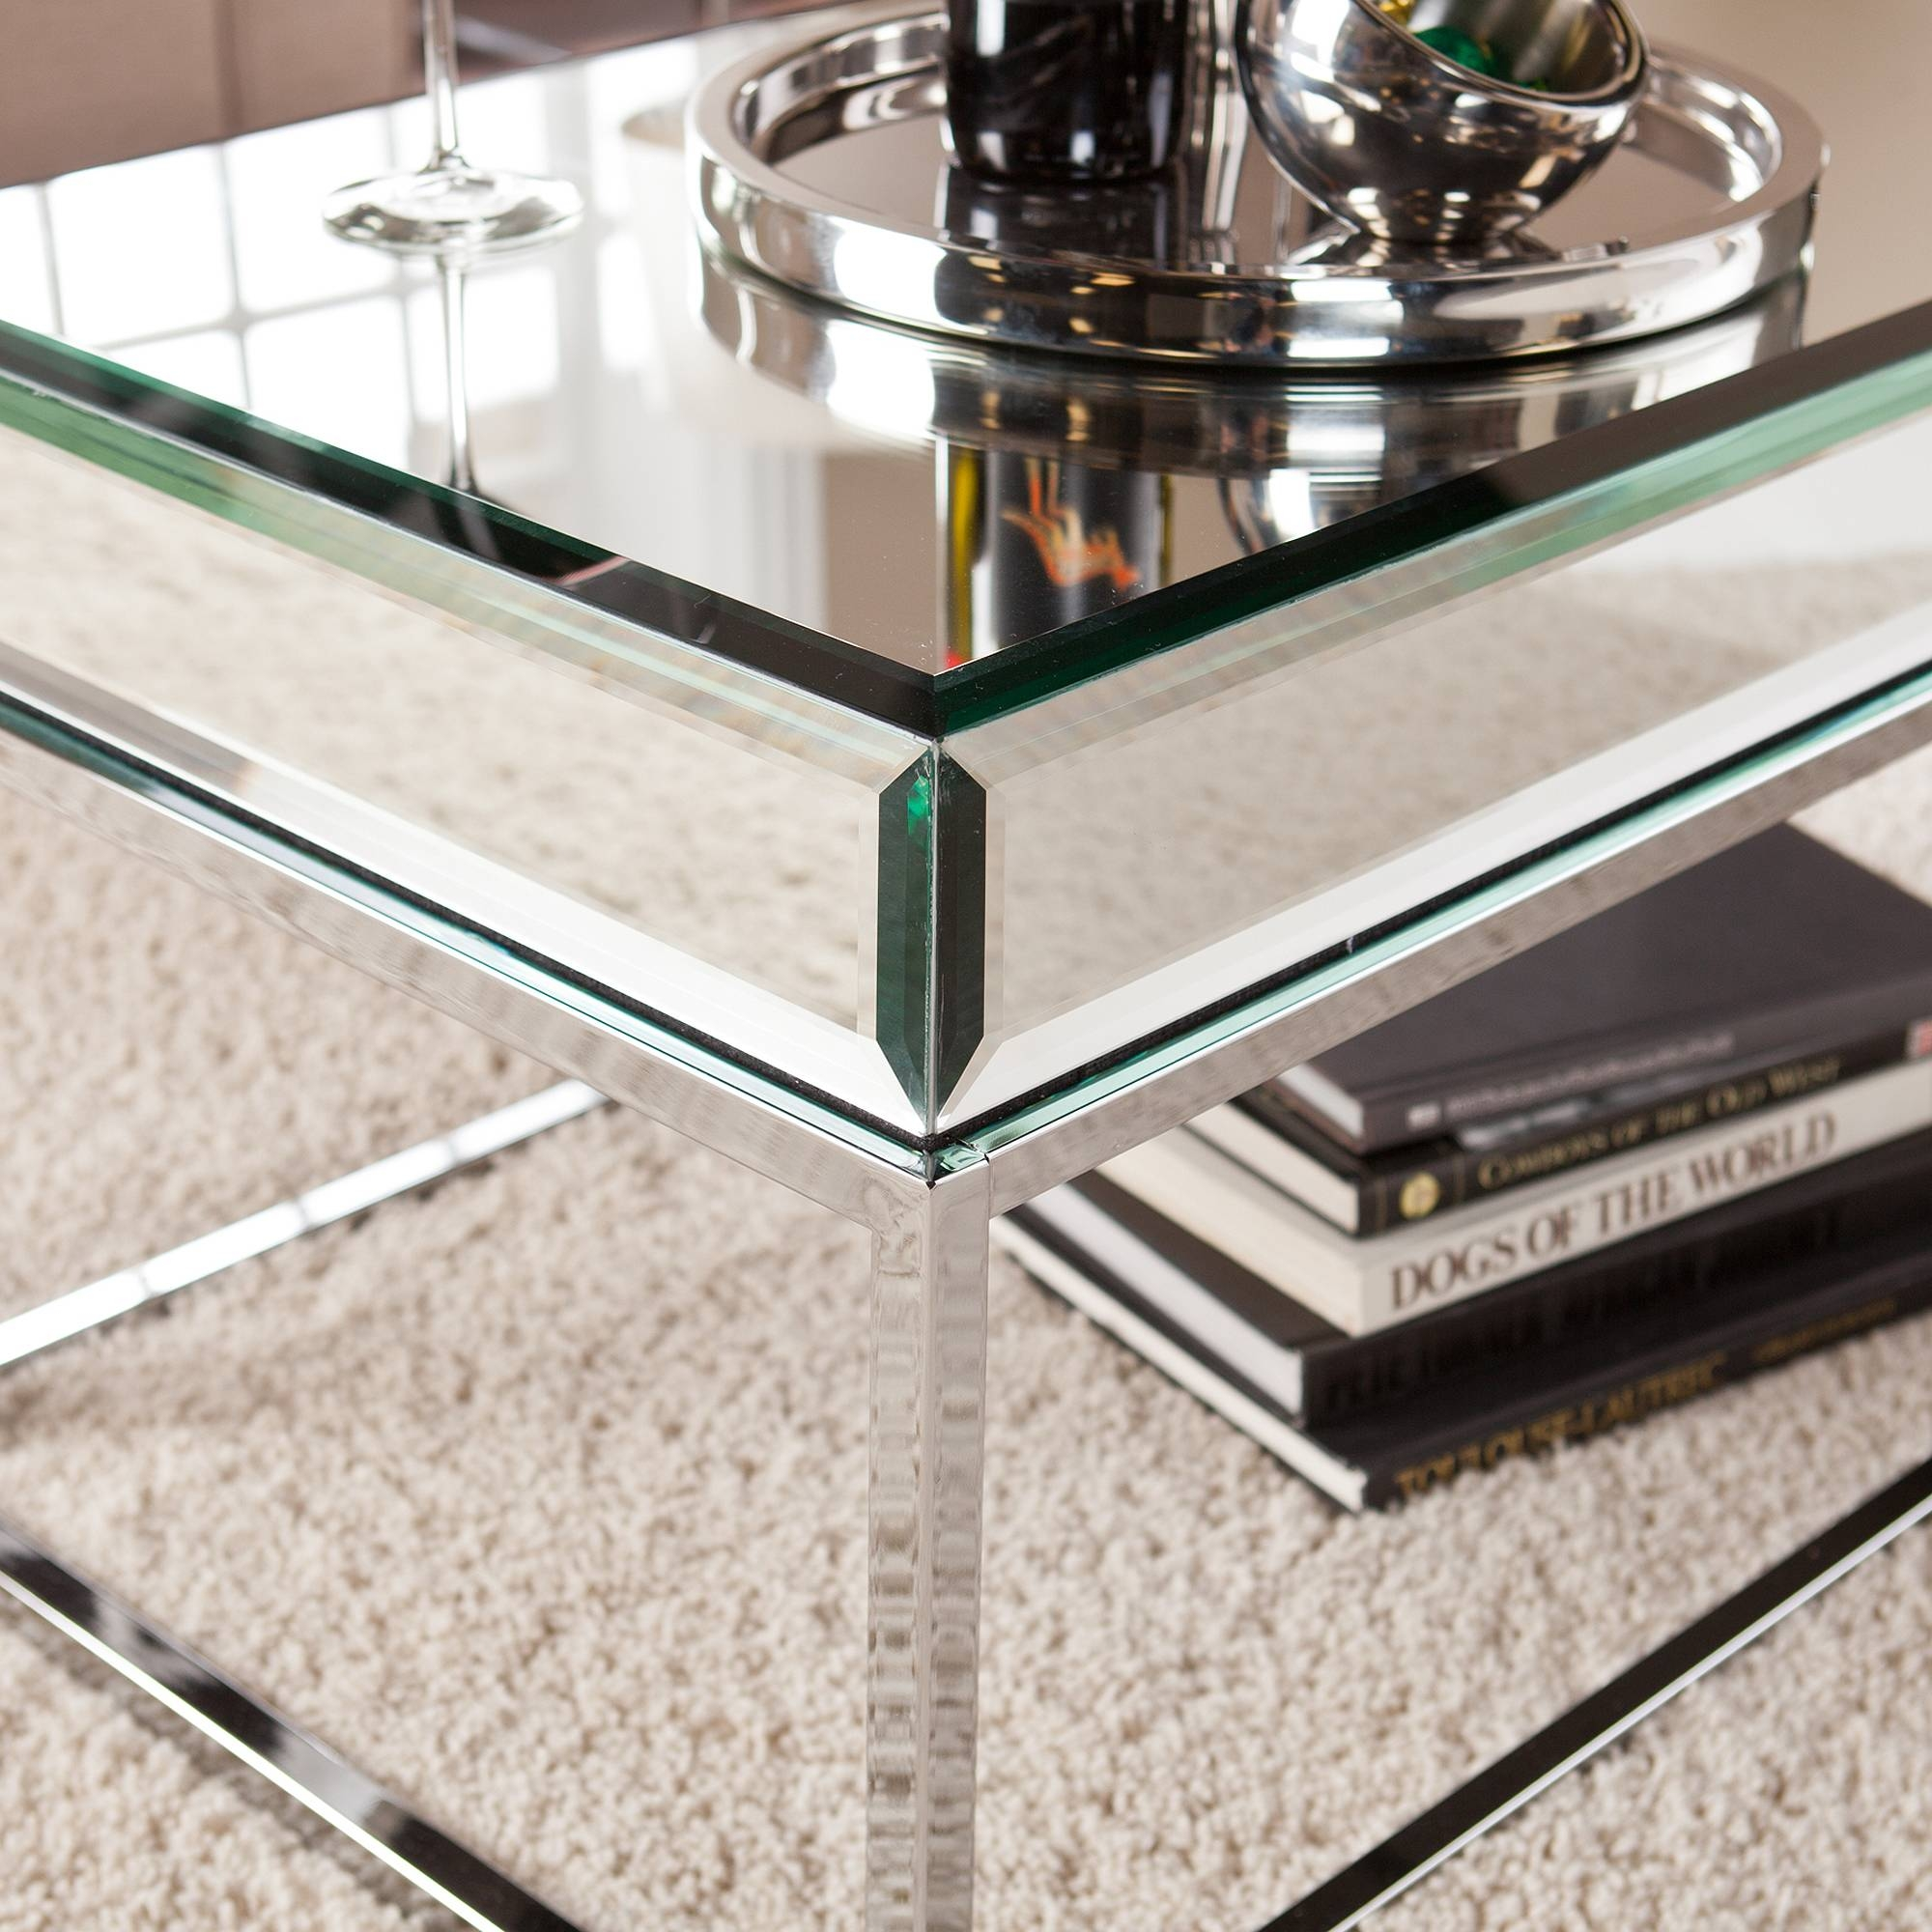 Scenic Featured Photo Mirrored Coffee Tables Mirrored Coffee Table Drawers Mirrored Coffee Table Target Mirrored Coffee Tables 2018 houzz-02 Mirrored Coffee Table